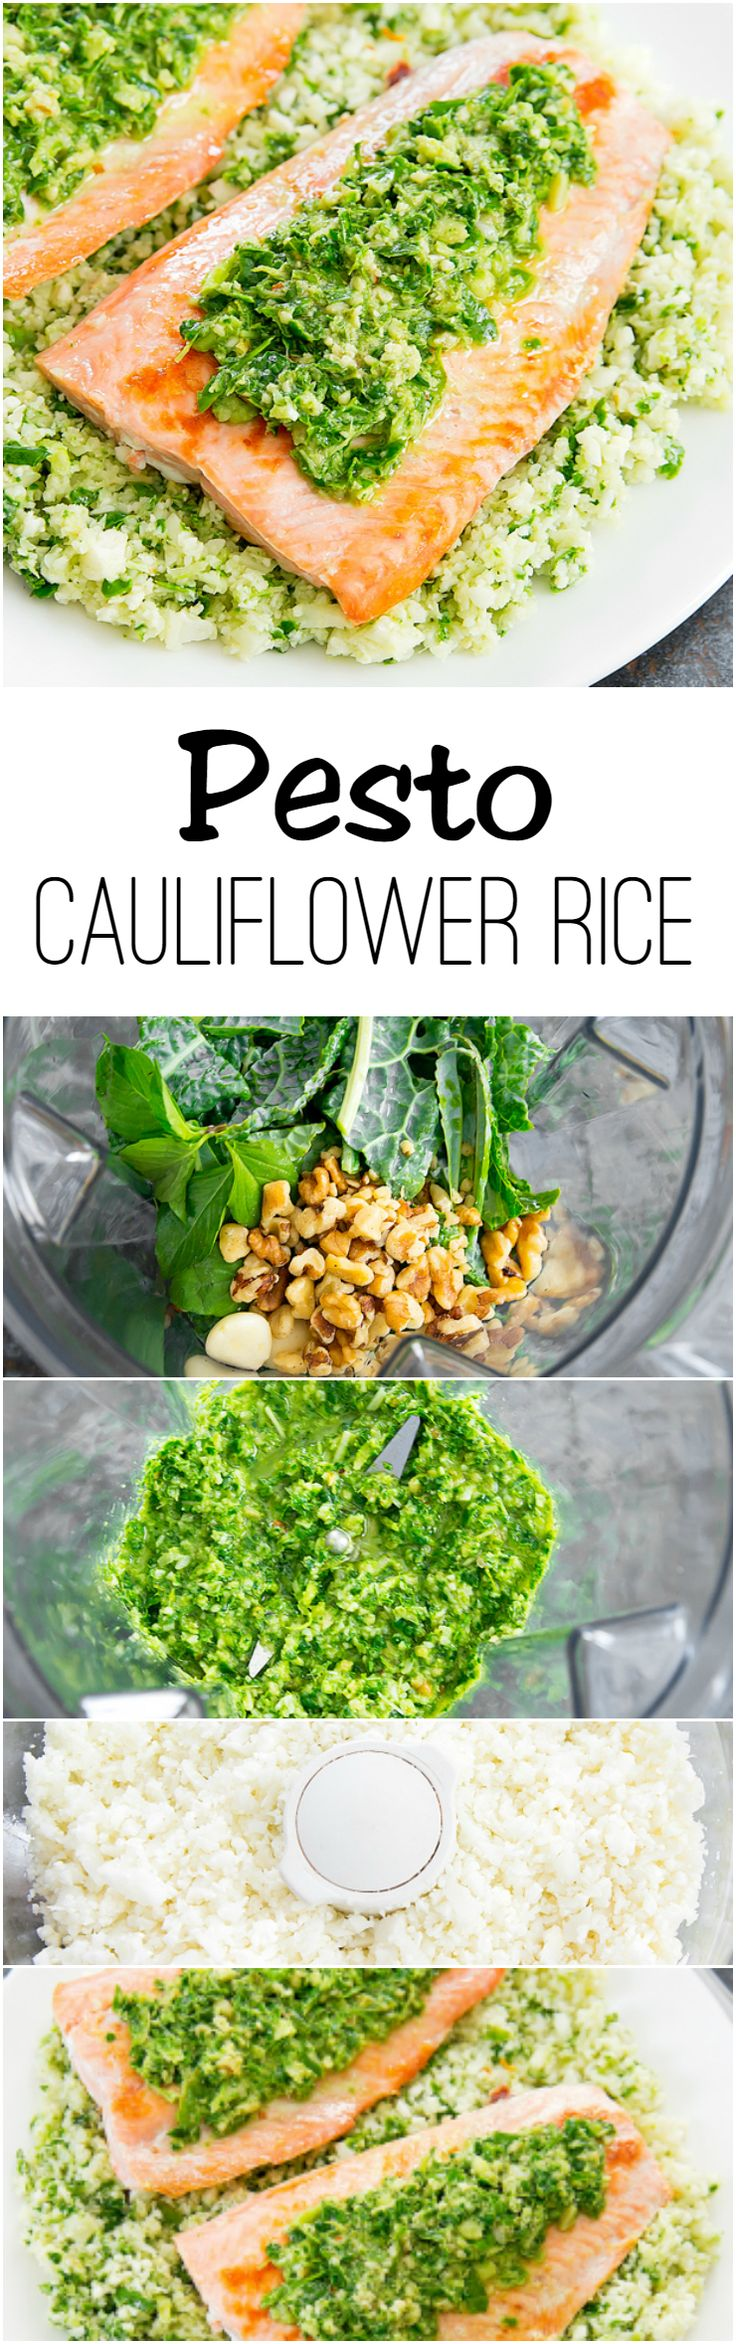 Pesto Cauliflower Rice With Salmon